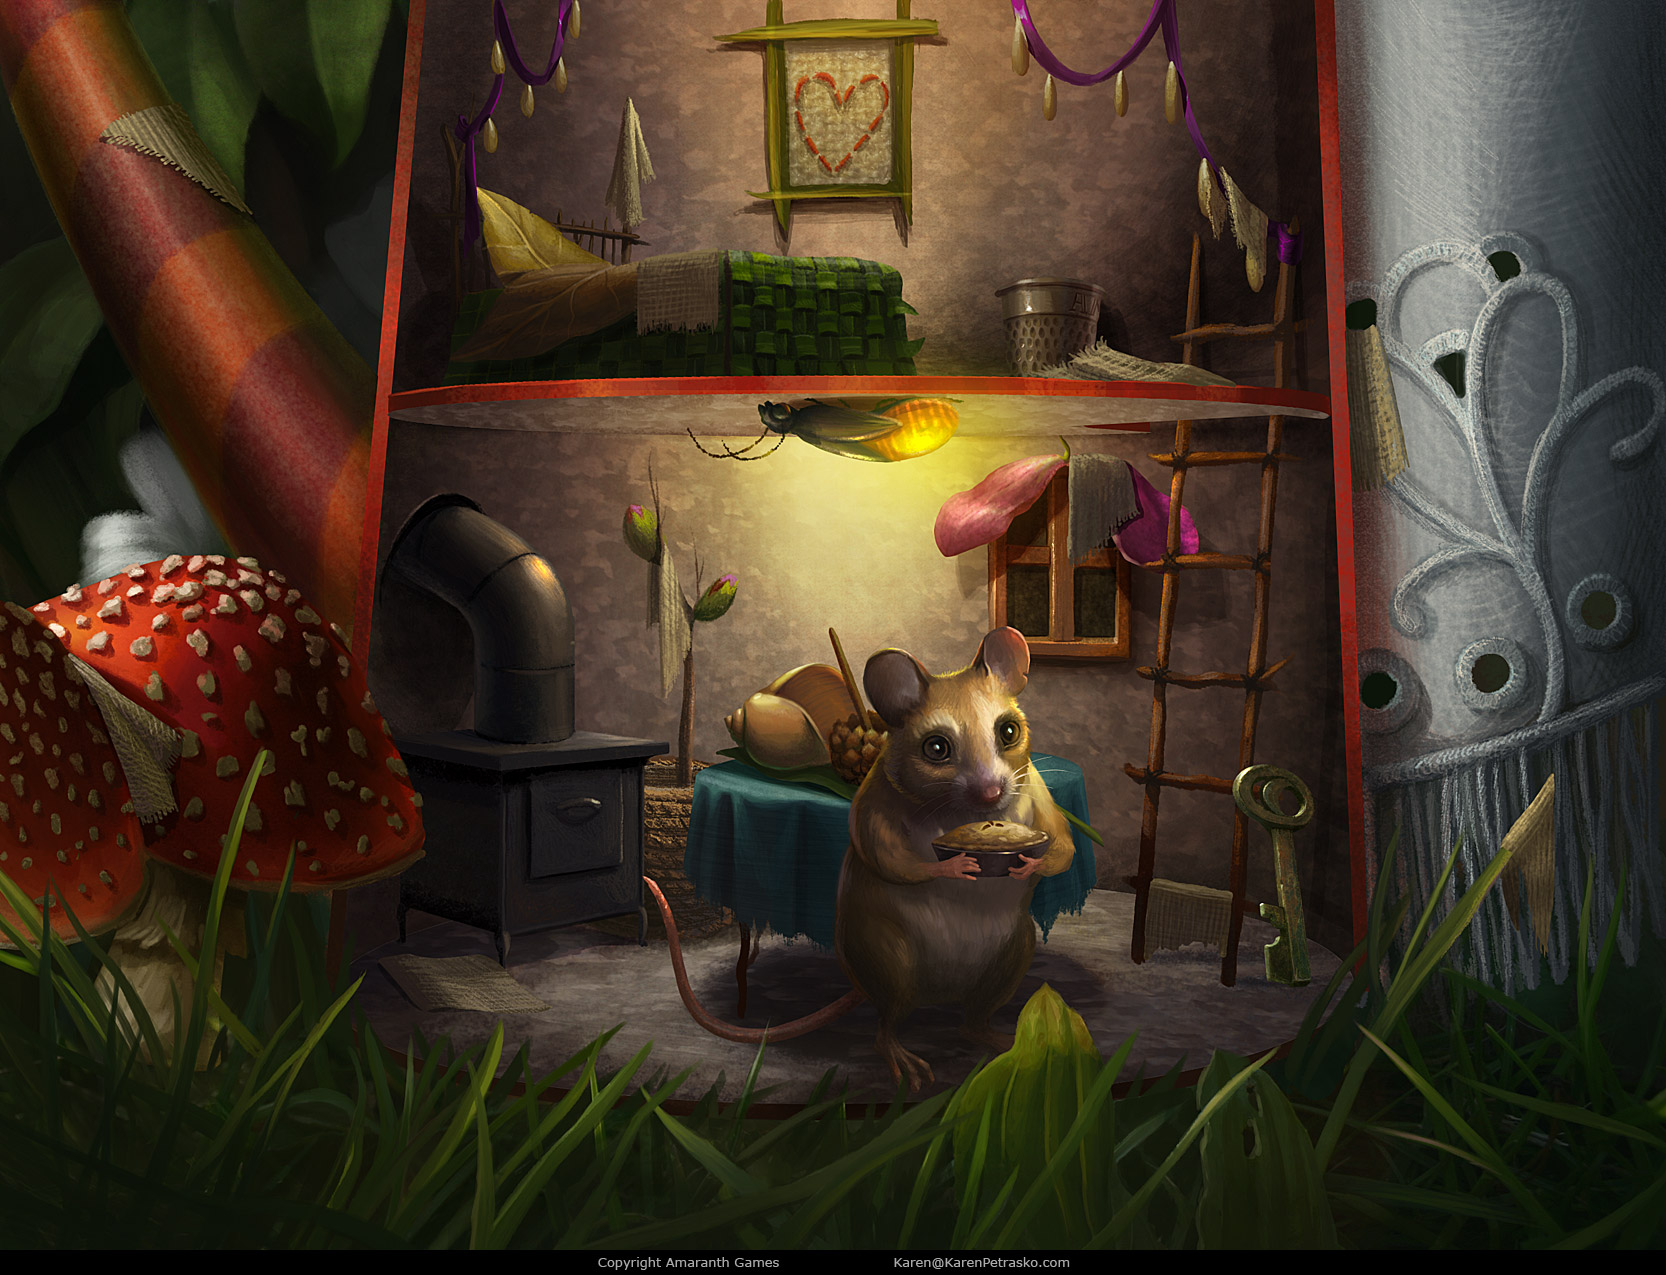 Mouse House created for Curse at Twilight: Thief of Souls